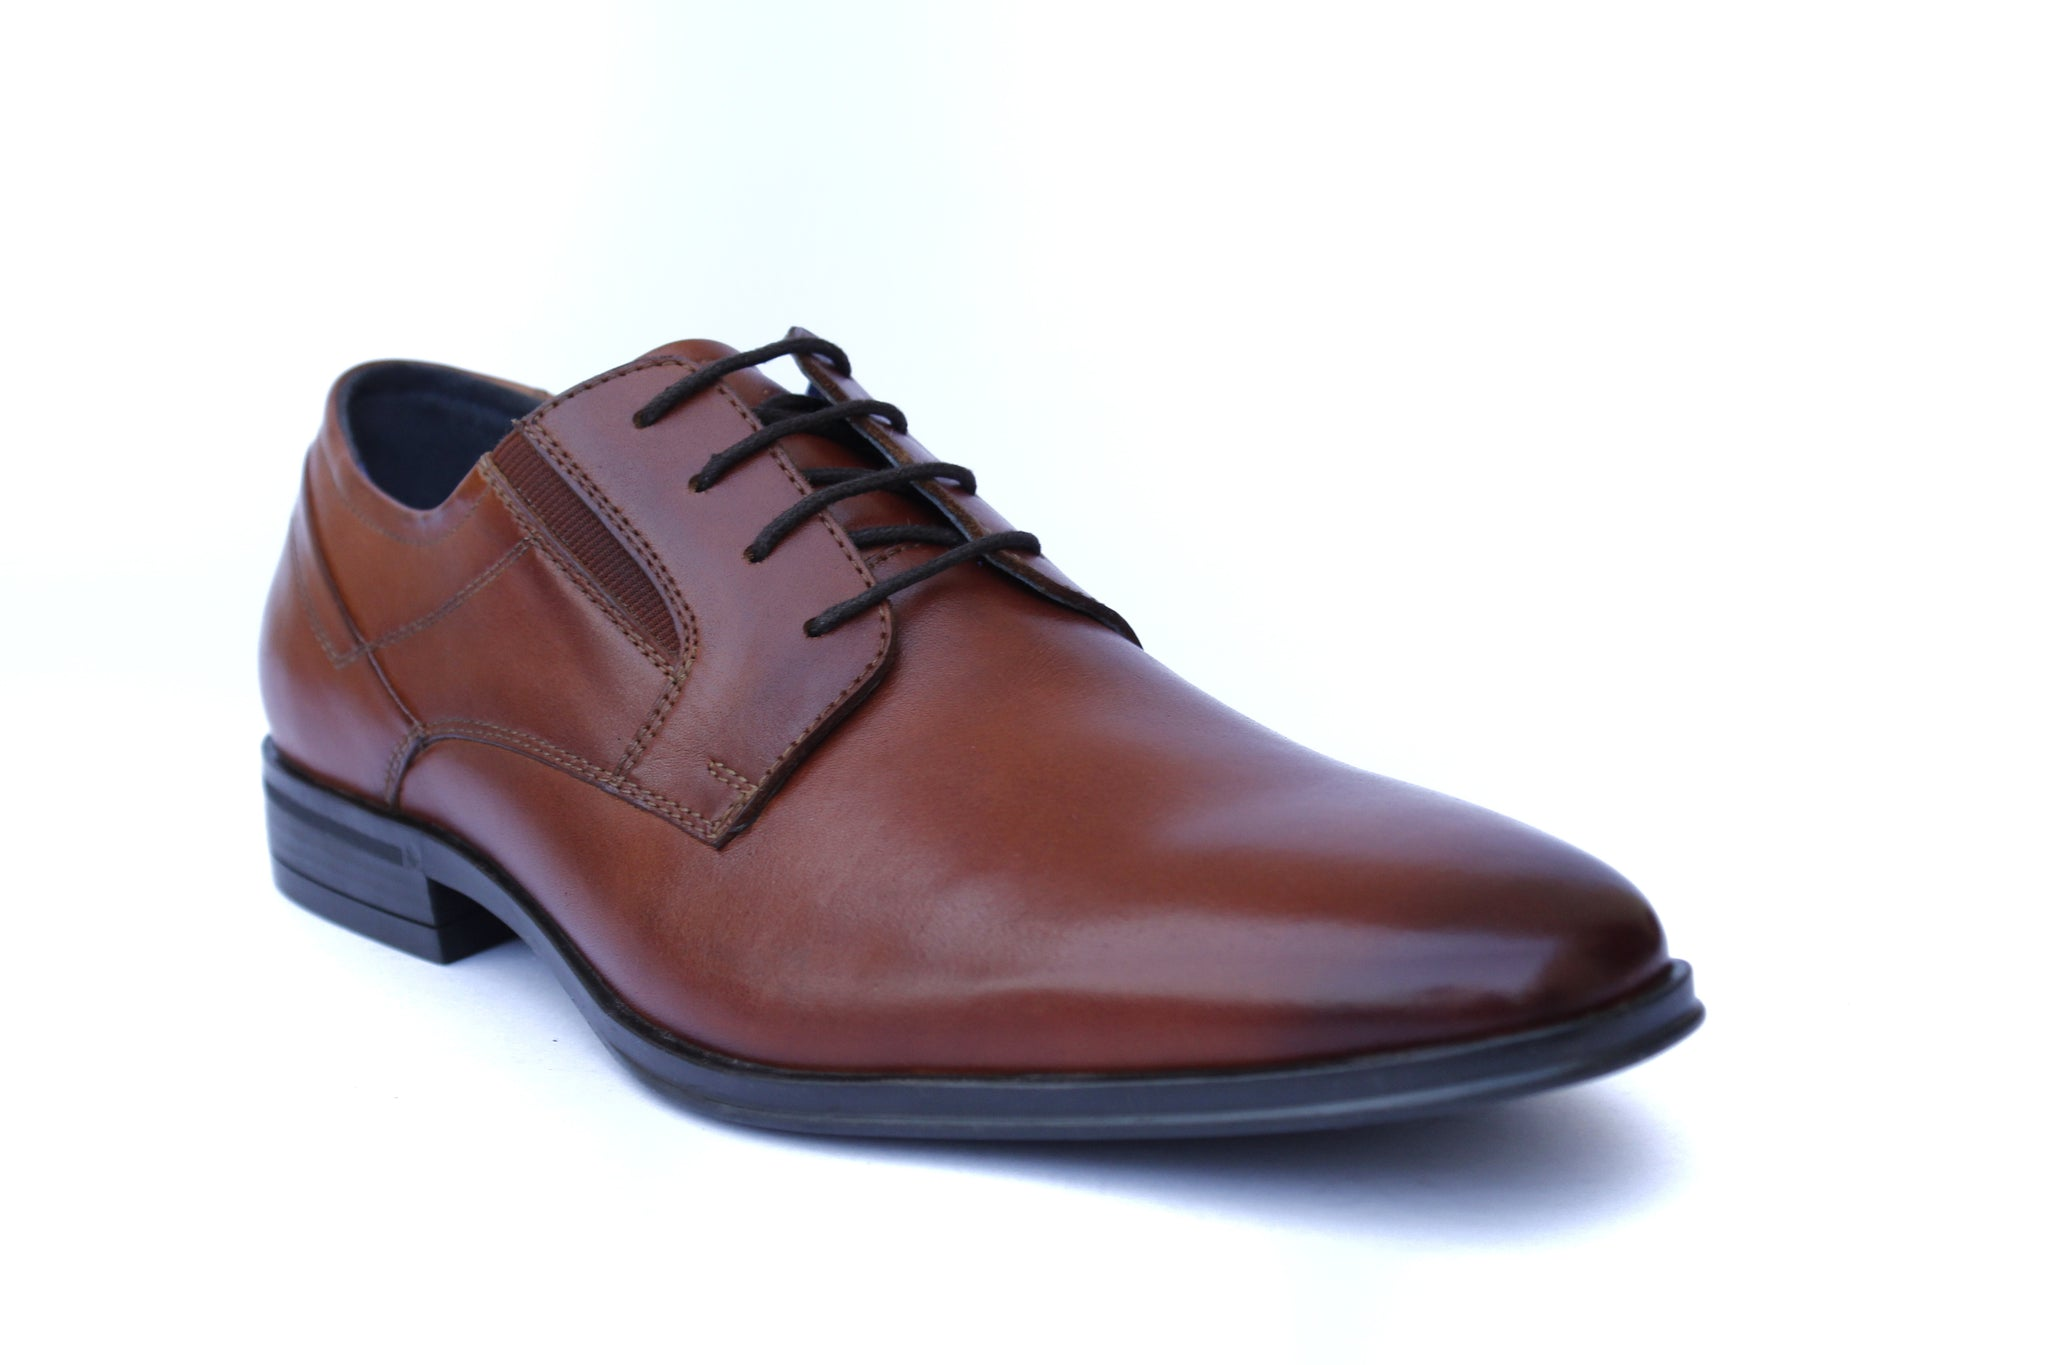 Overdrive 9 2 5 Ashes OD Roses Derby Shoe